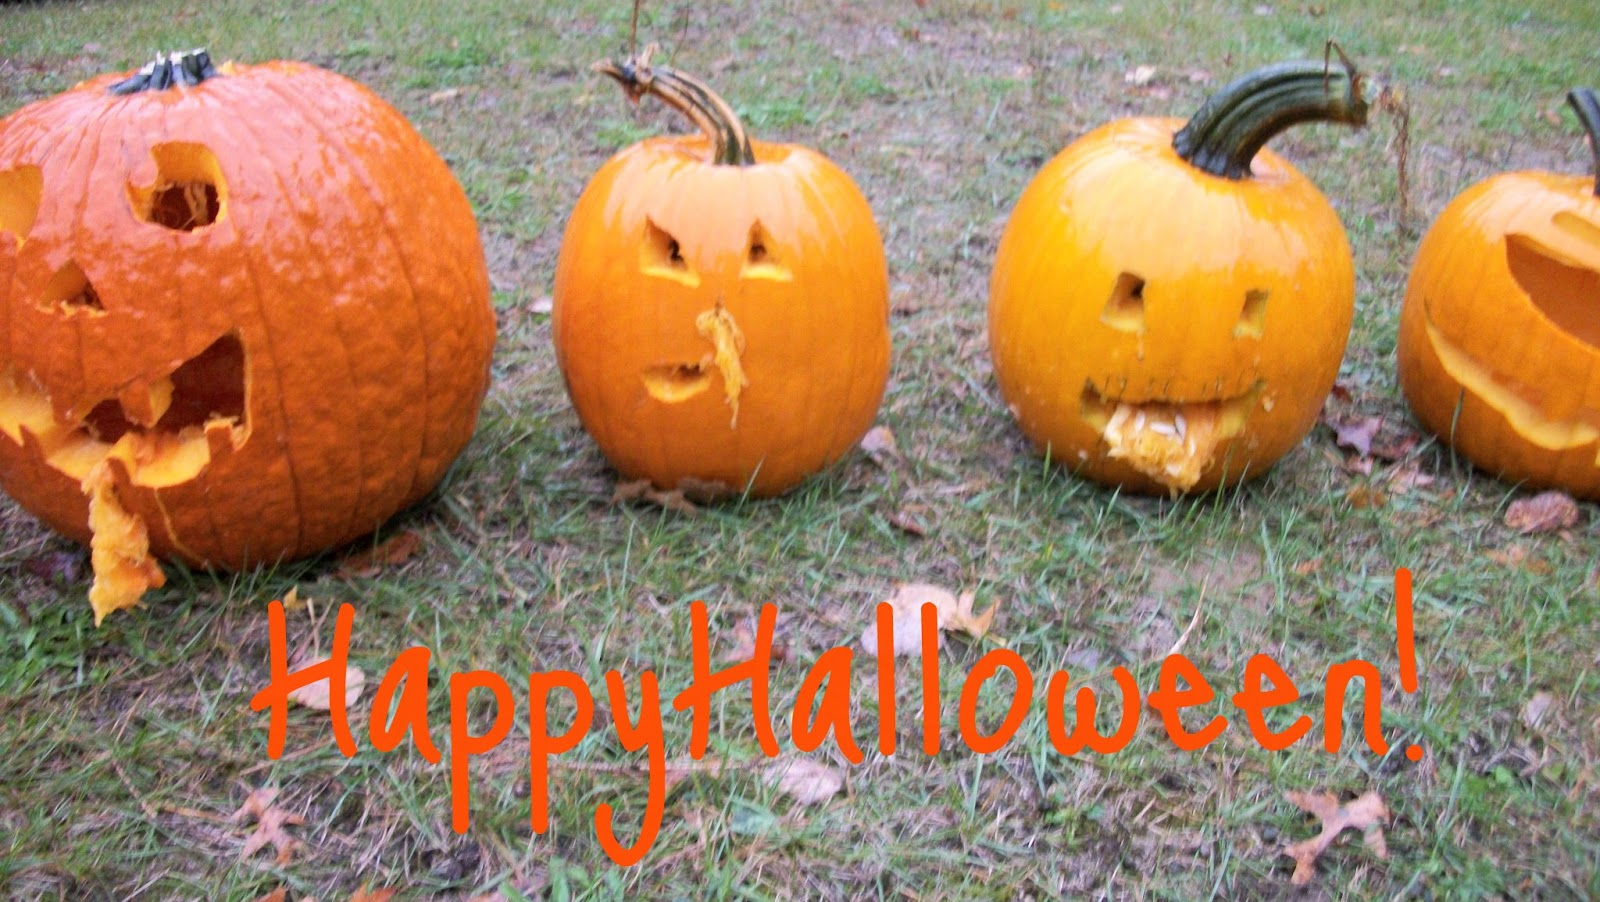 April's Country Life: Happy Halloween! Costume Ideas from